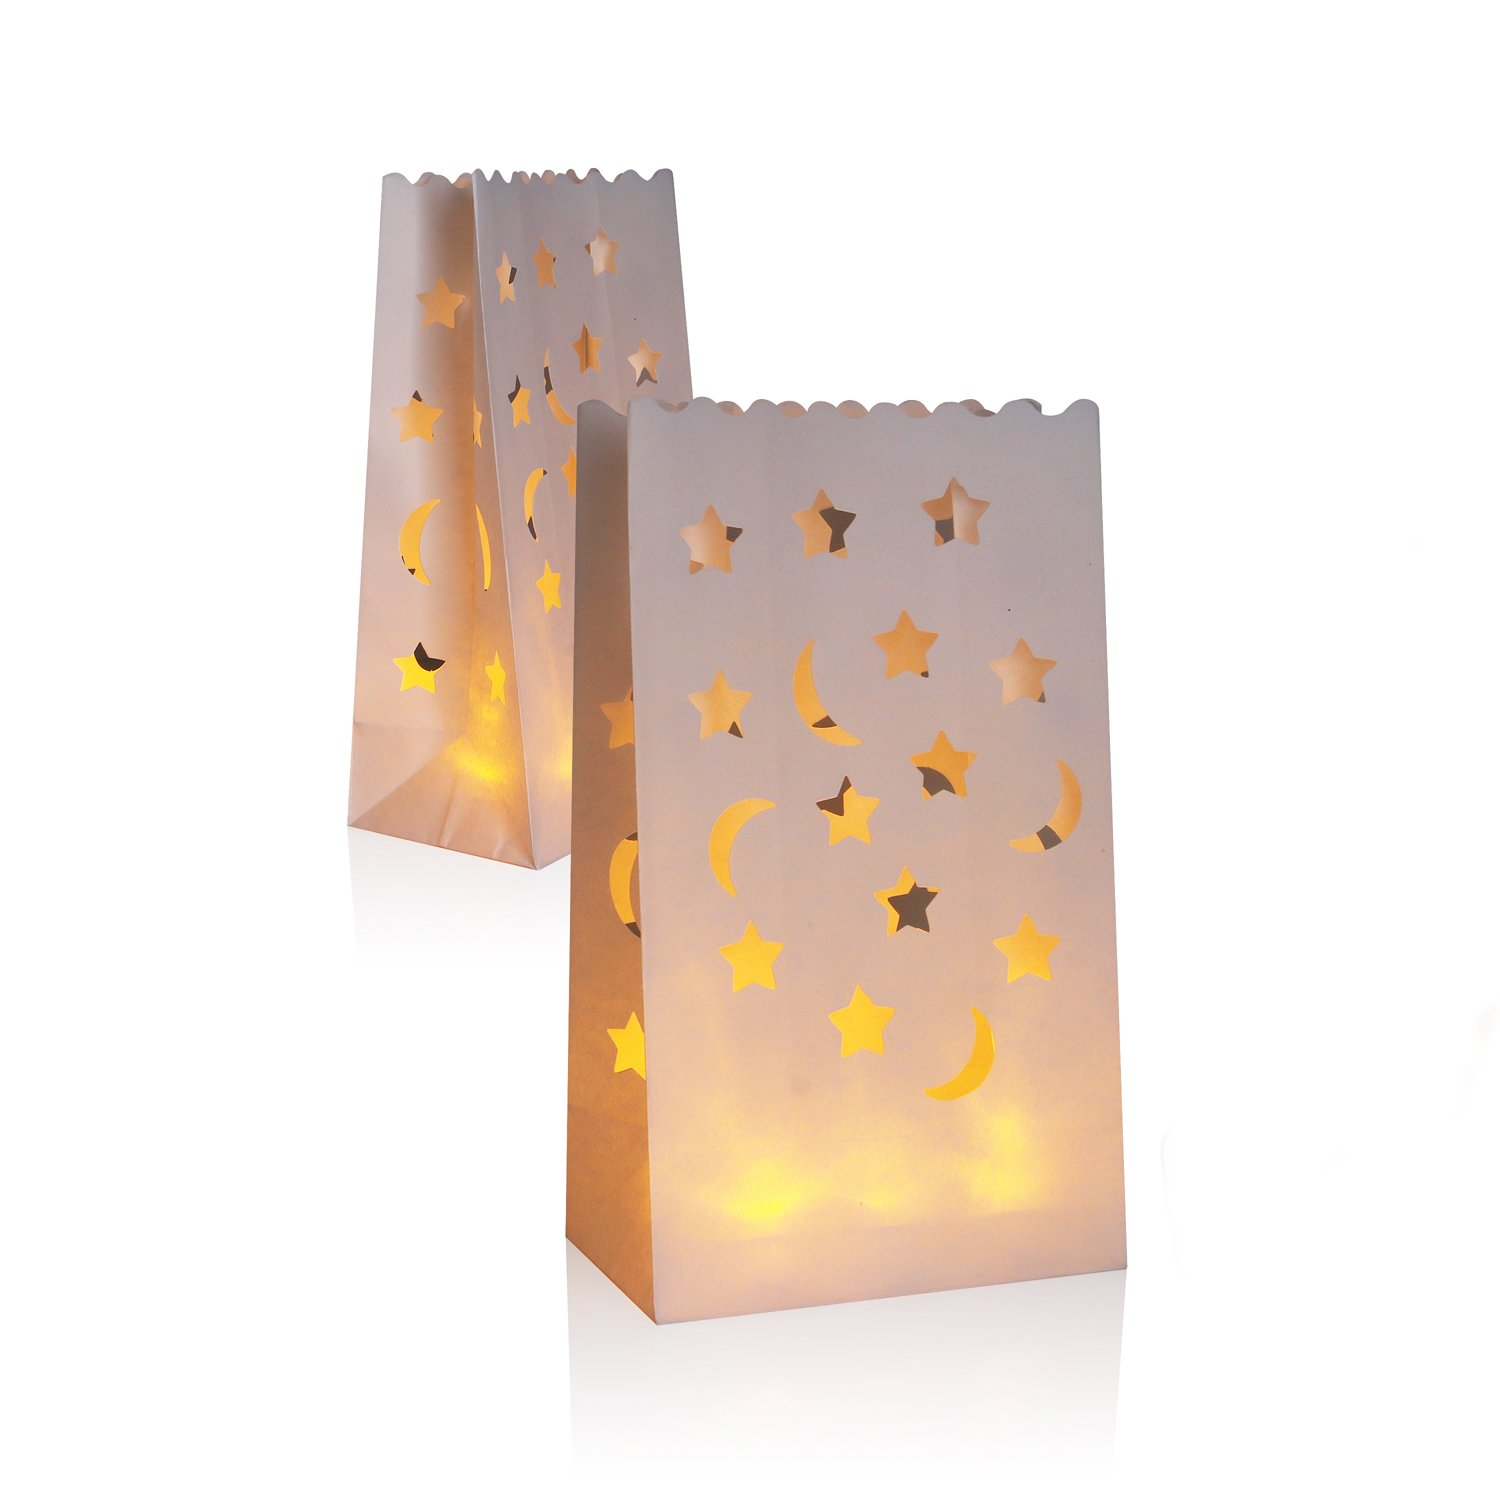 AceList 30 Packs Luminary Paper Lantern, Candle Tealight Tea Light Bag Bags - Flame Resistant Paper for BBQ Party Wedding Reception Party and Event Decor